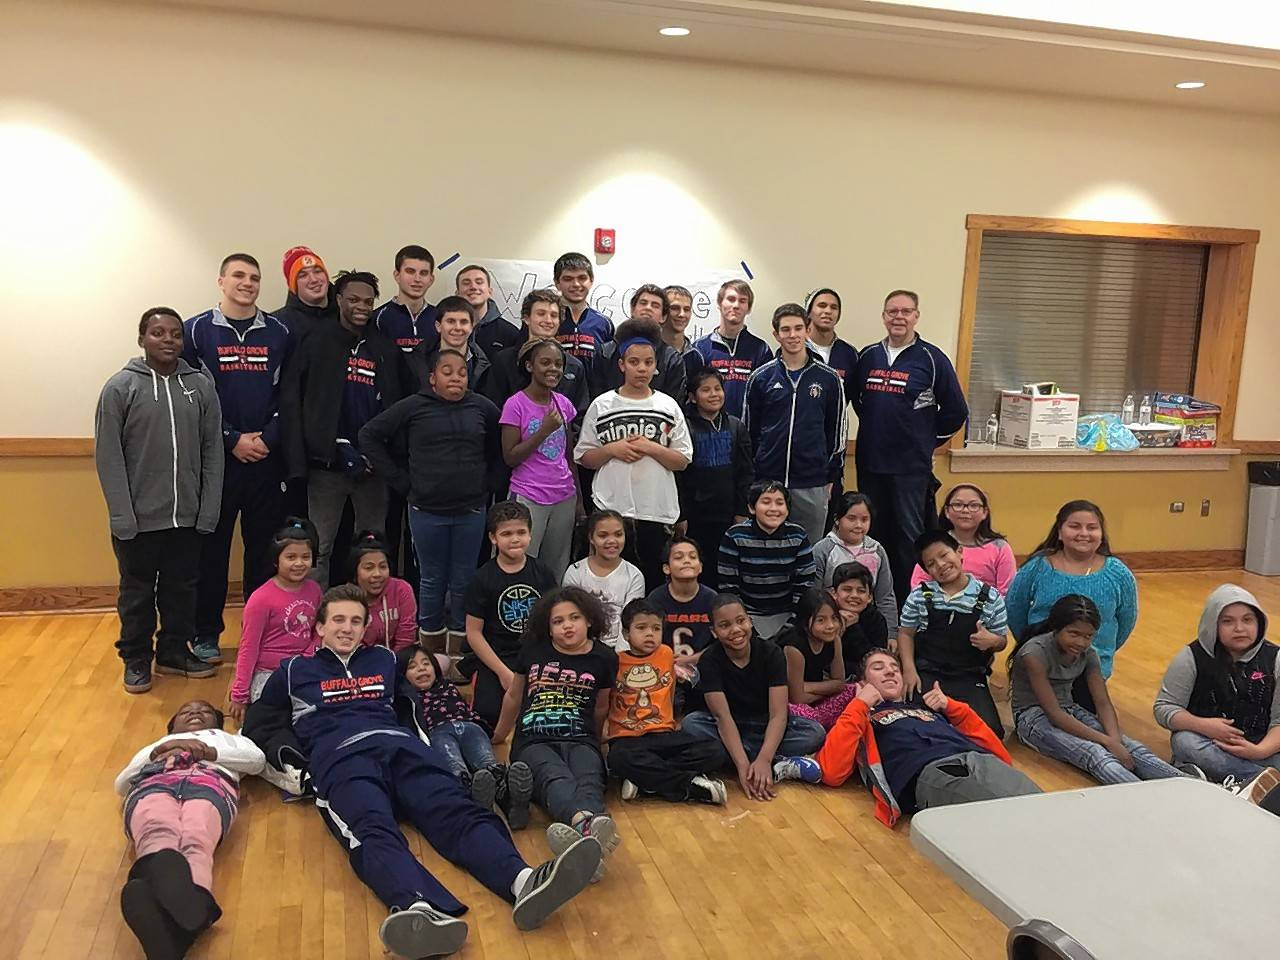 Buffalo Grove's boys basketball team recently continued a commitment with Partners for our Communities, spending a day with grade-school aged students in Palatine.